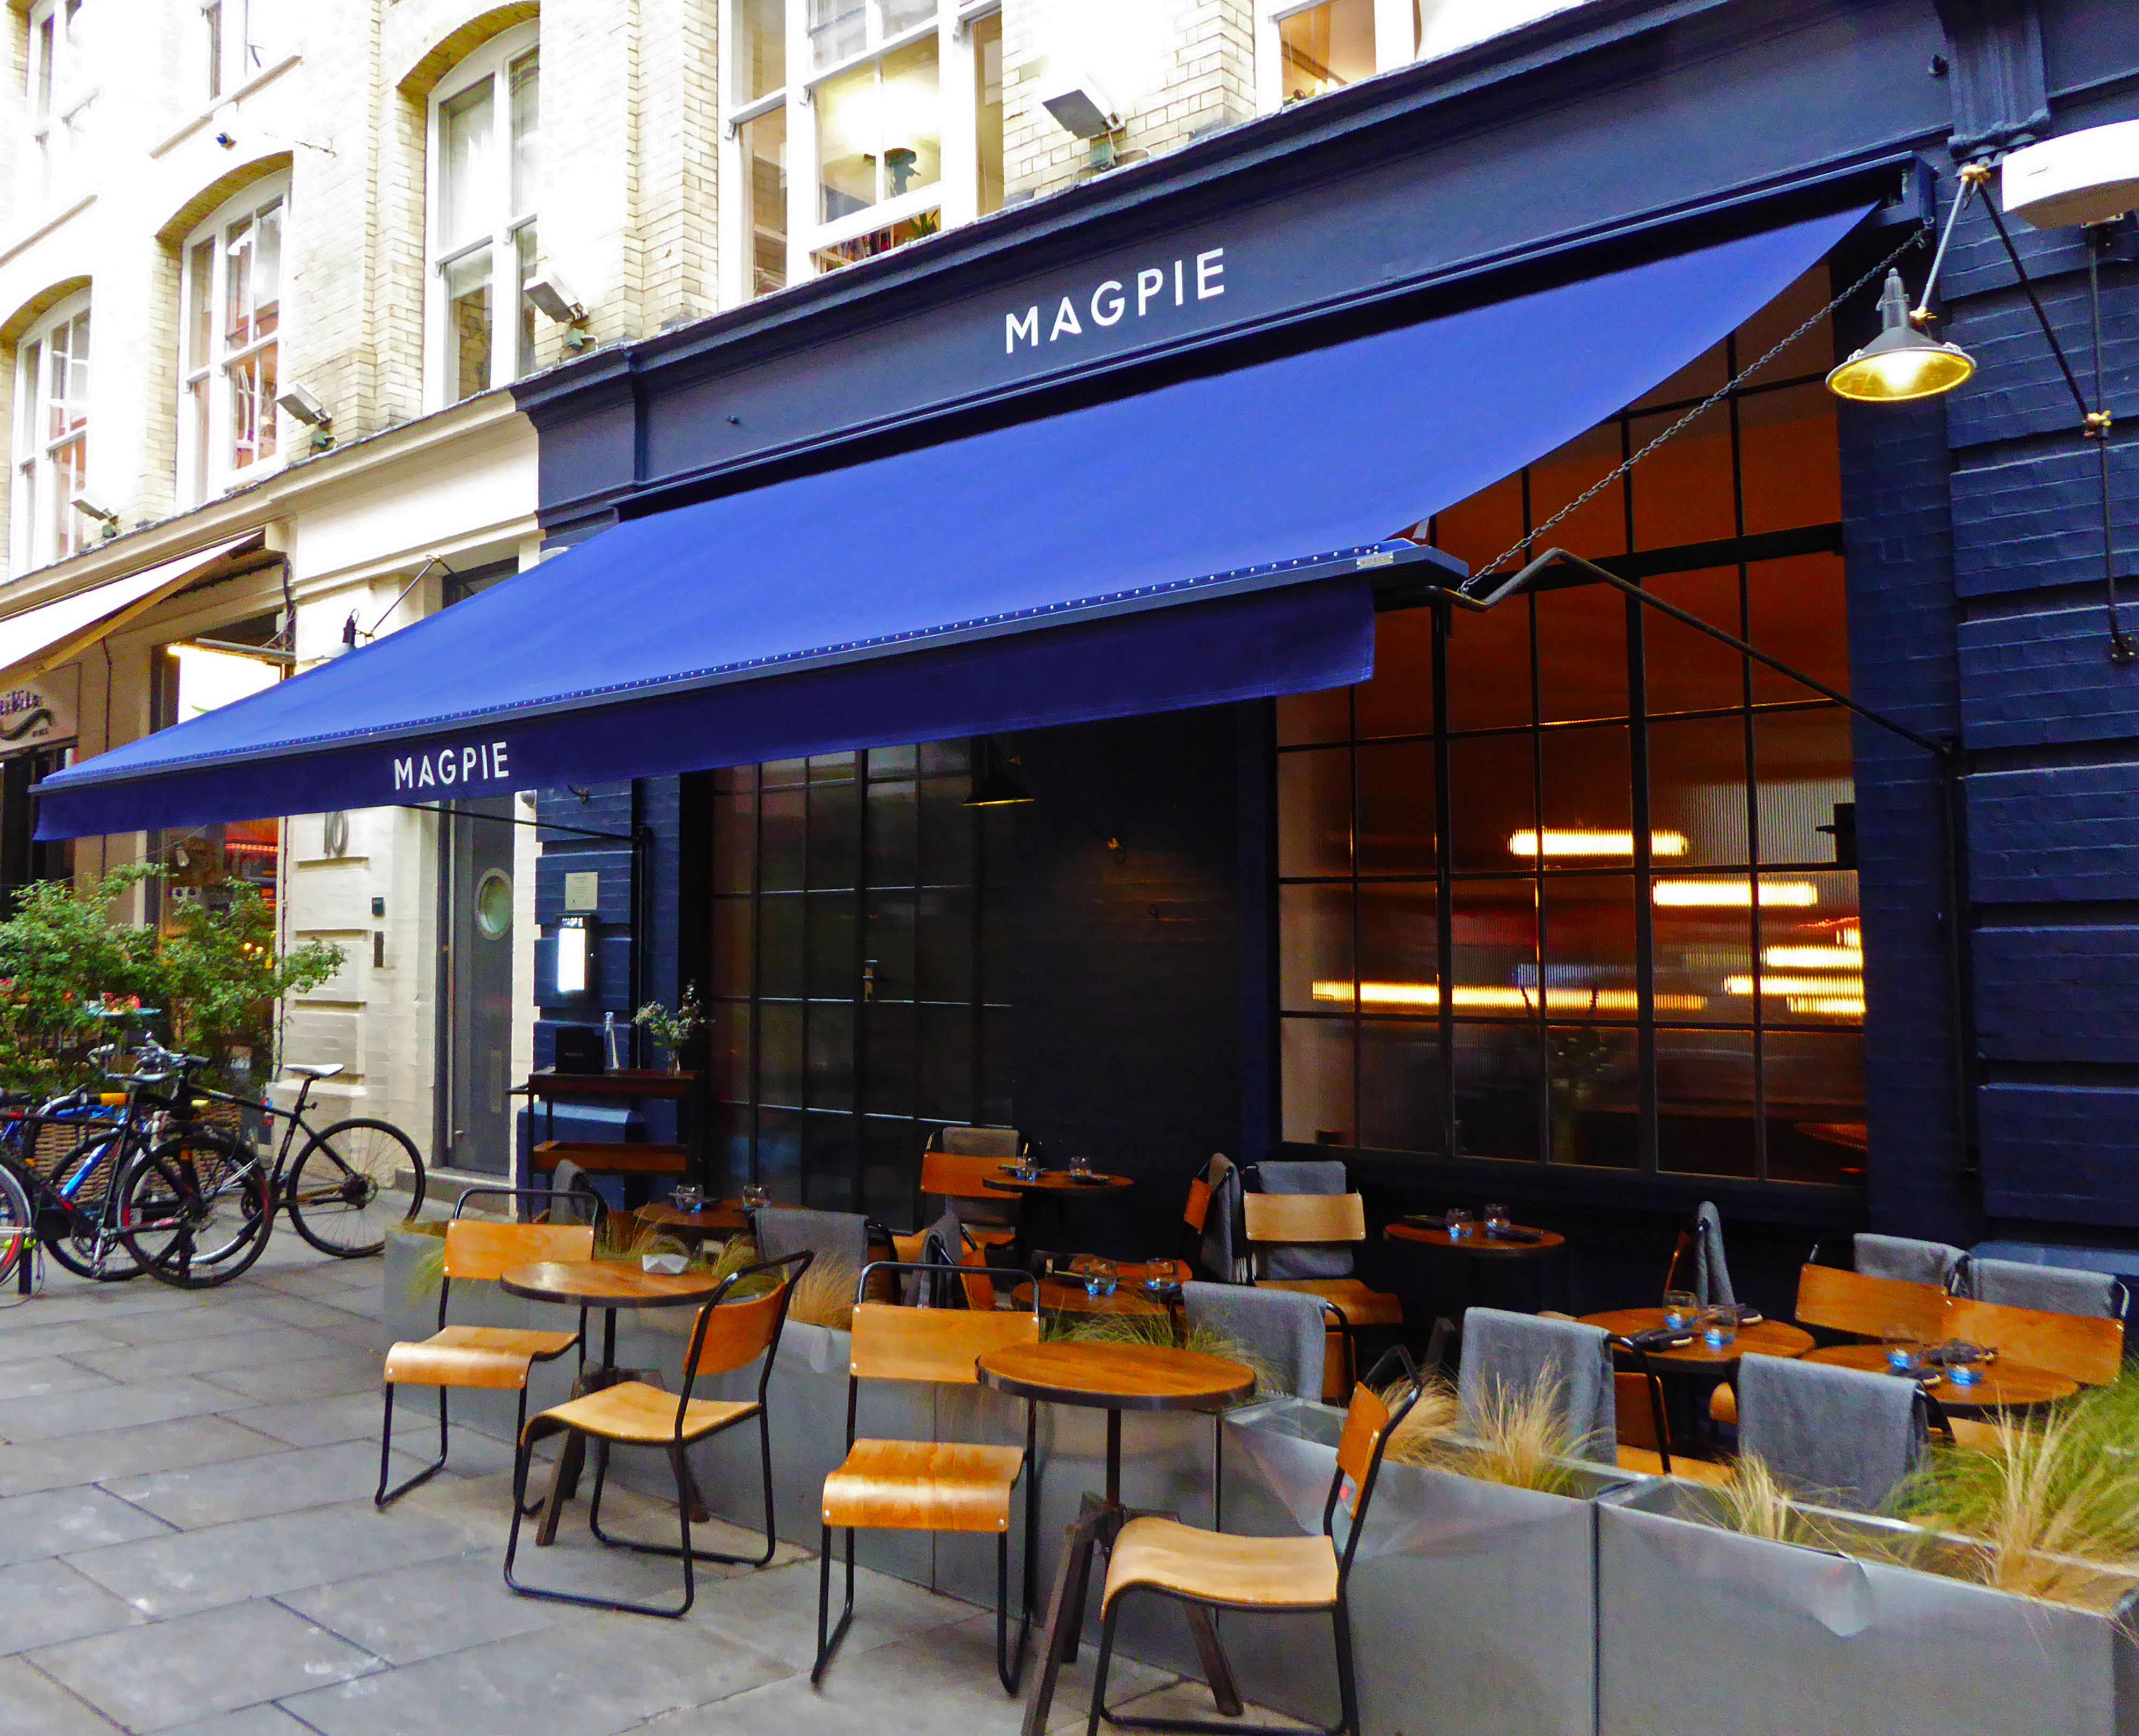 Magpie Victorian awning